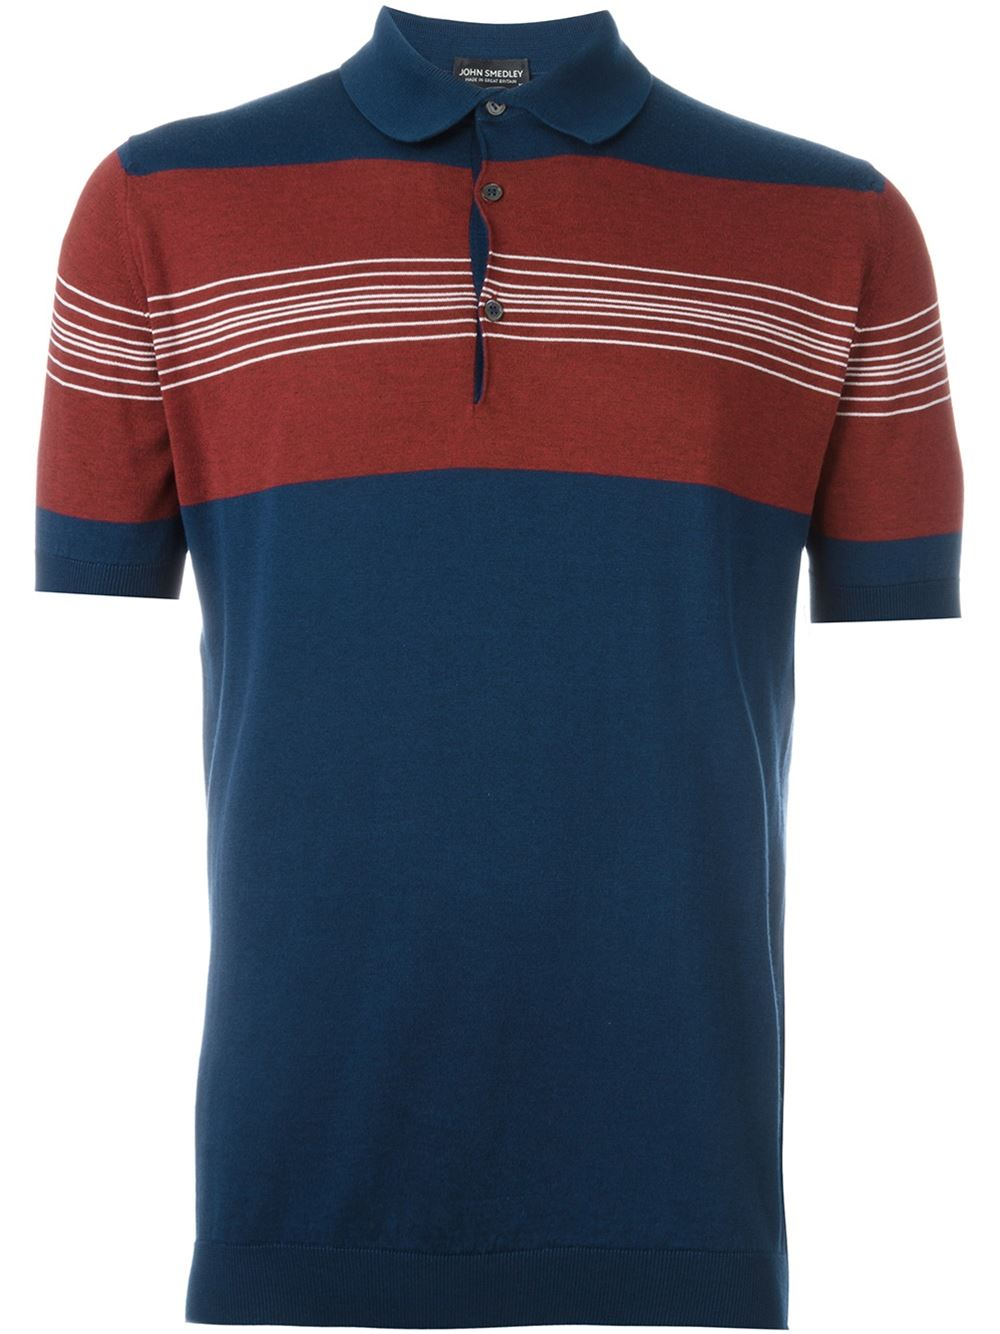 John Smedley Knitted Polo Shirt